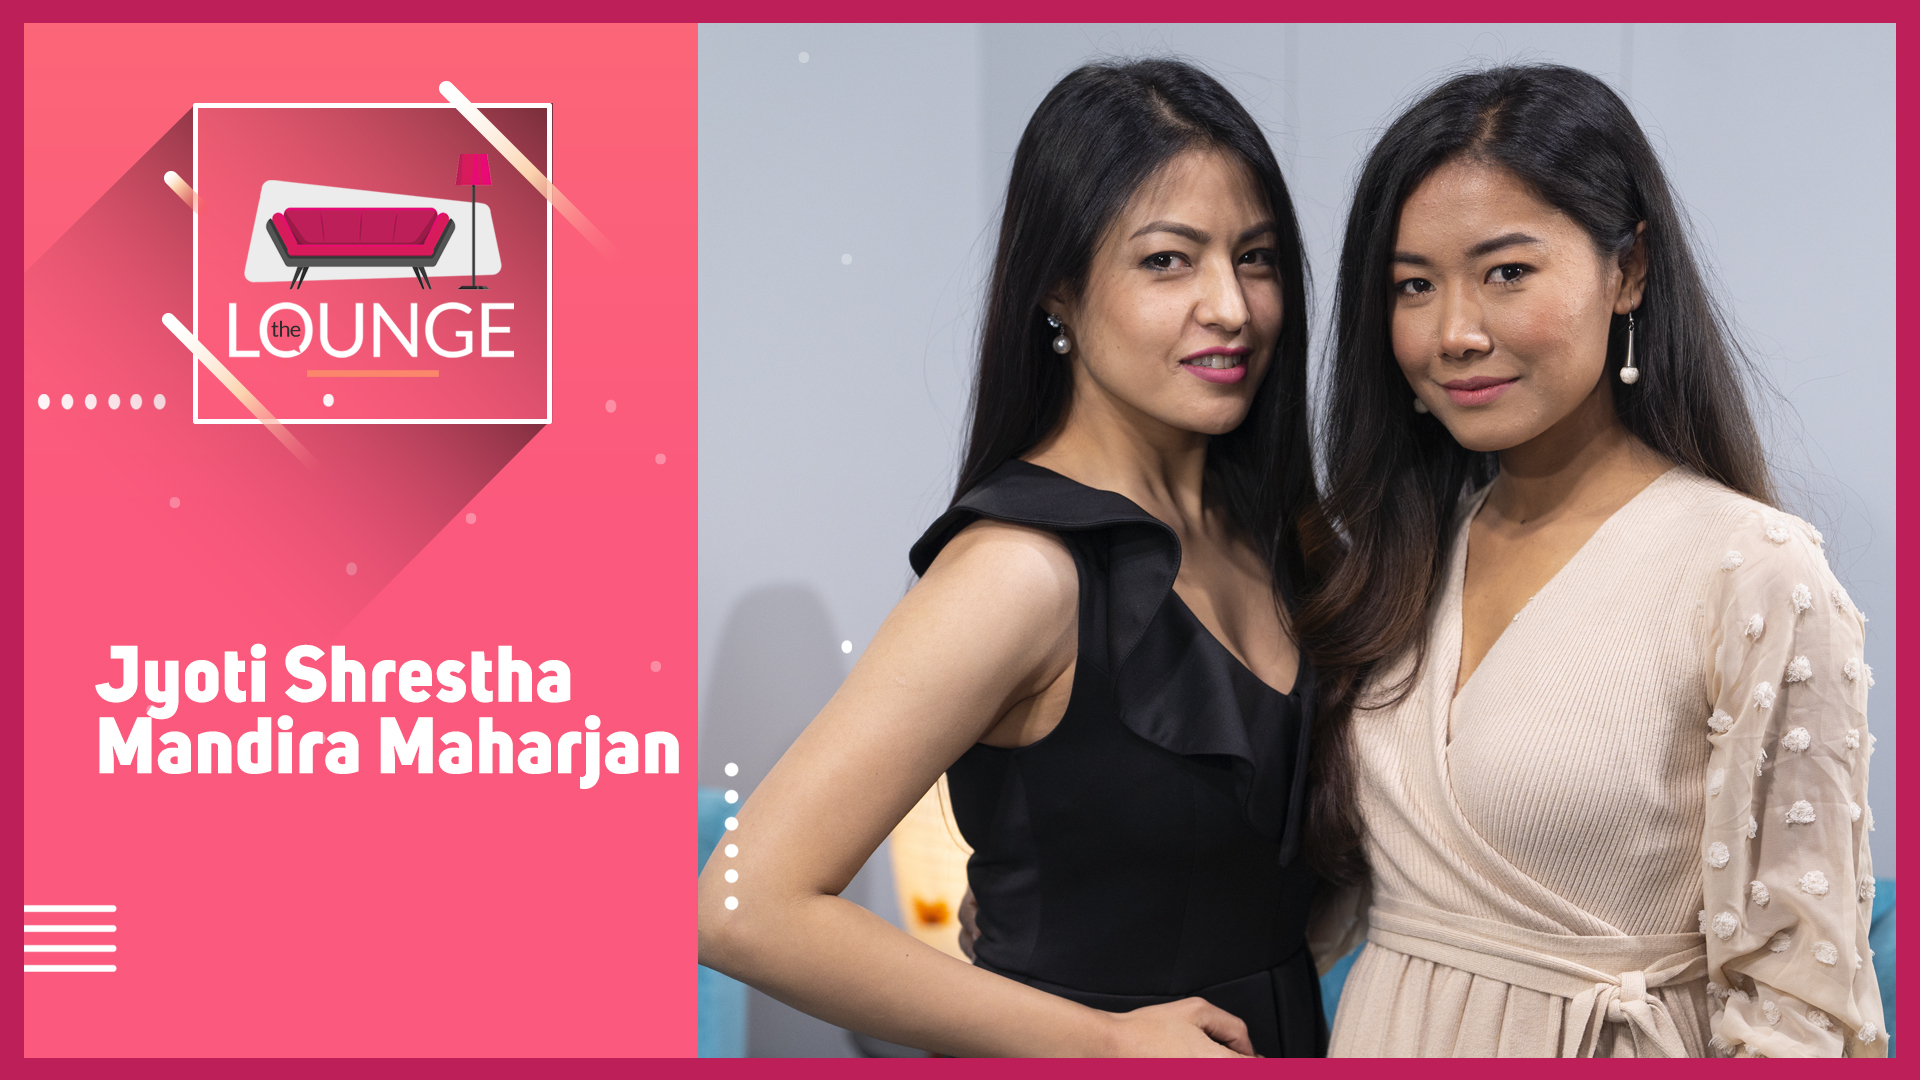 Life of VJ / Jyoti Shrestha and Mandira Maharjan | The Lounge with Jai Pradhan